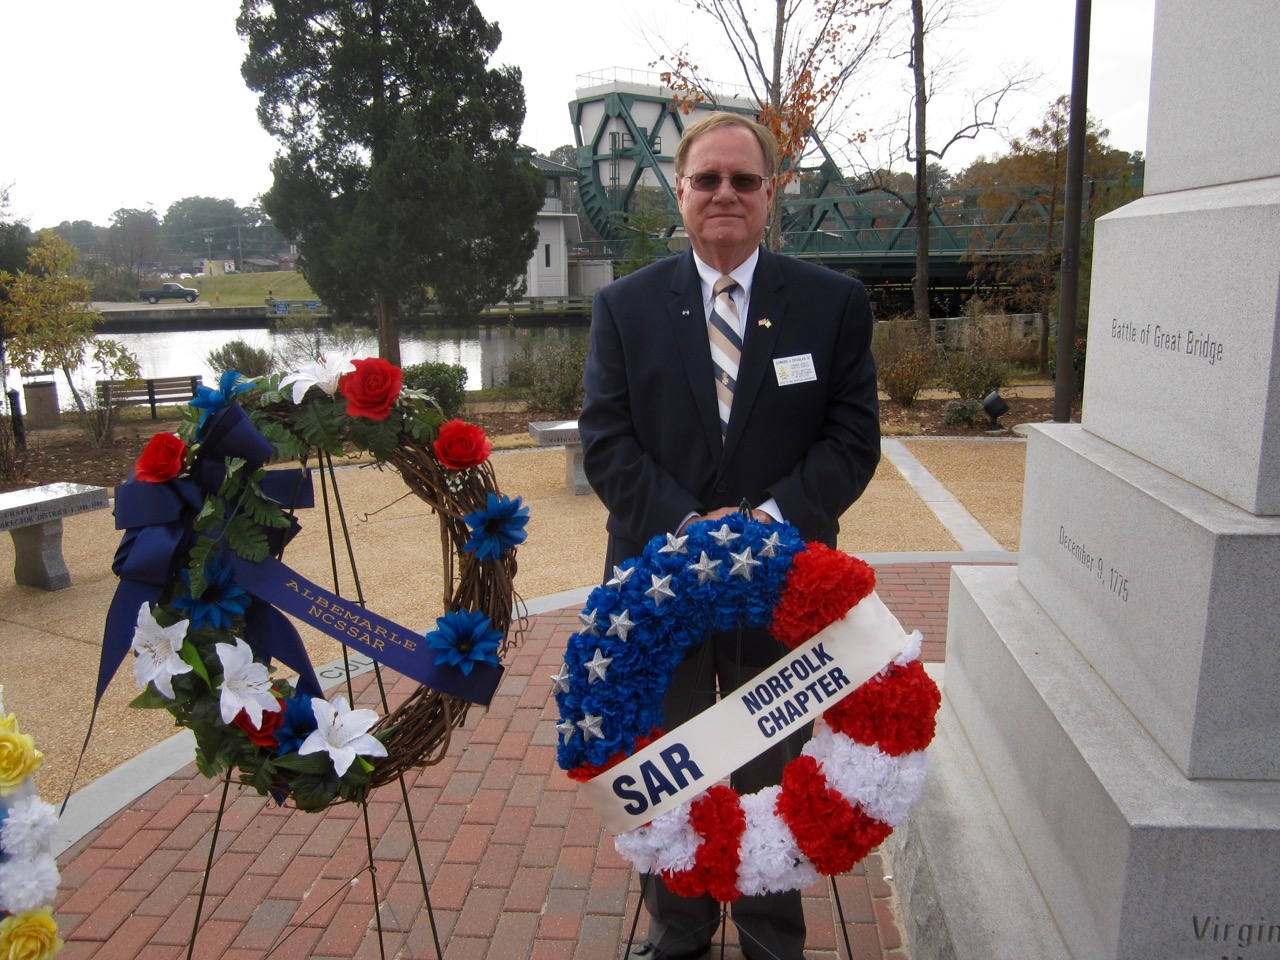 Norfolk Chapter SAR Secretary Edward Douglas presents the chapter wreath at the ceremony